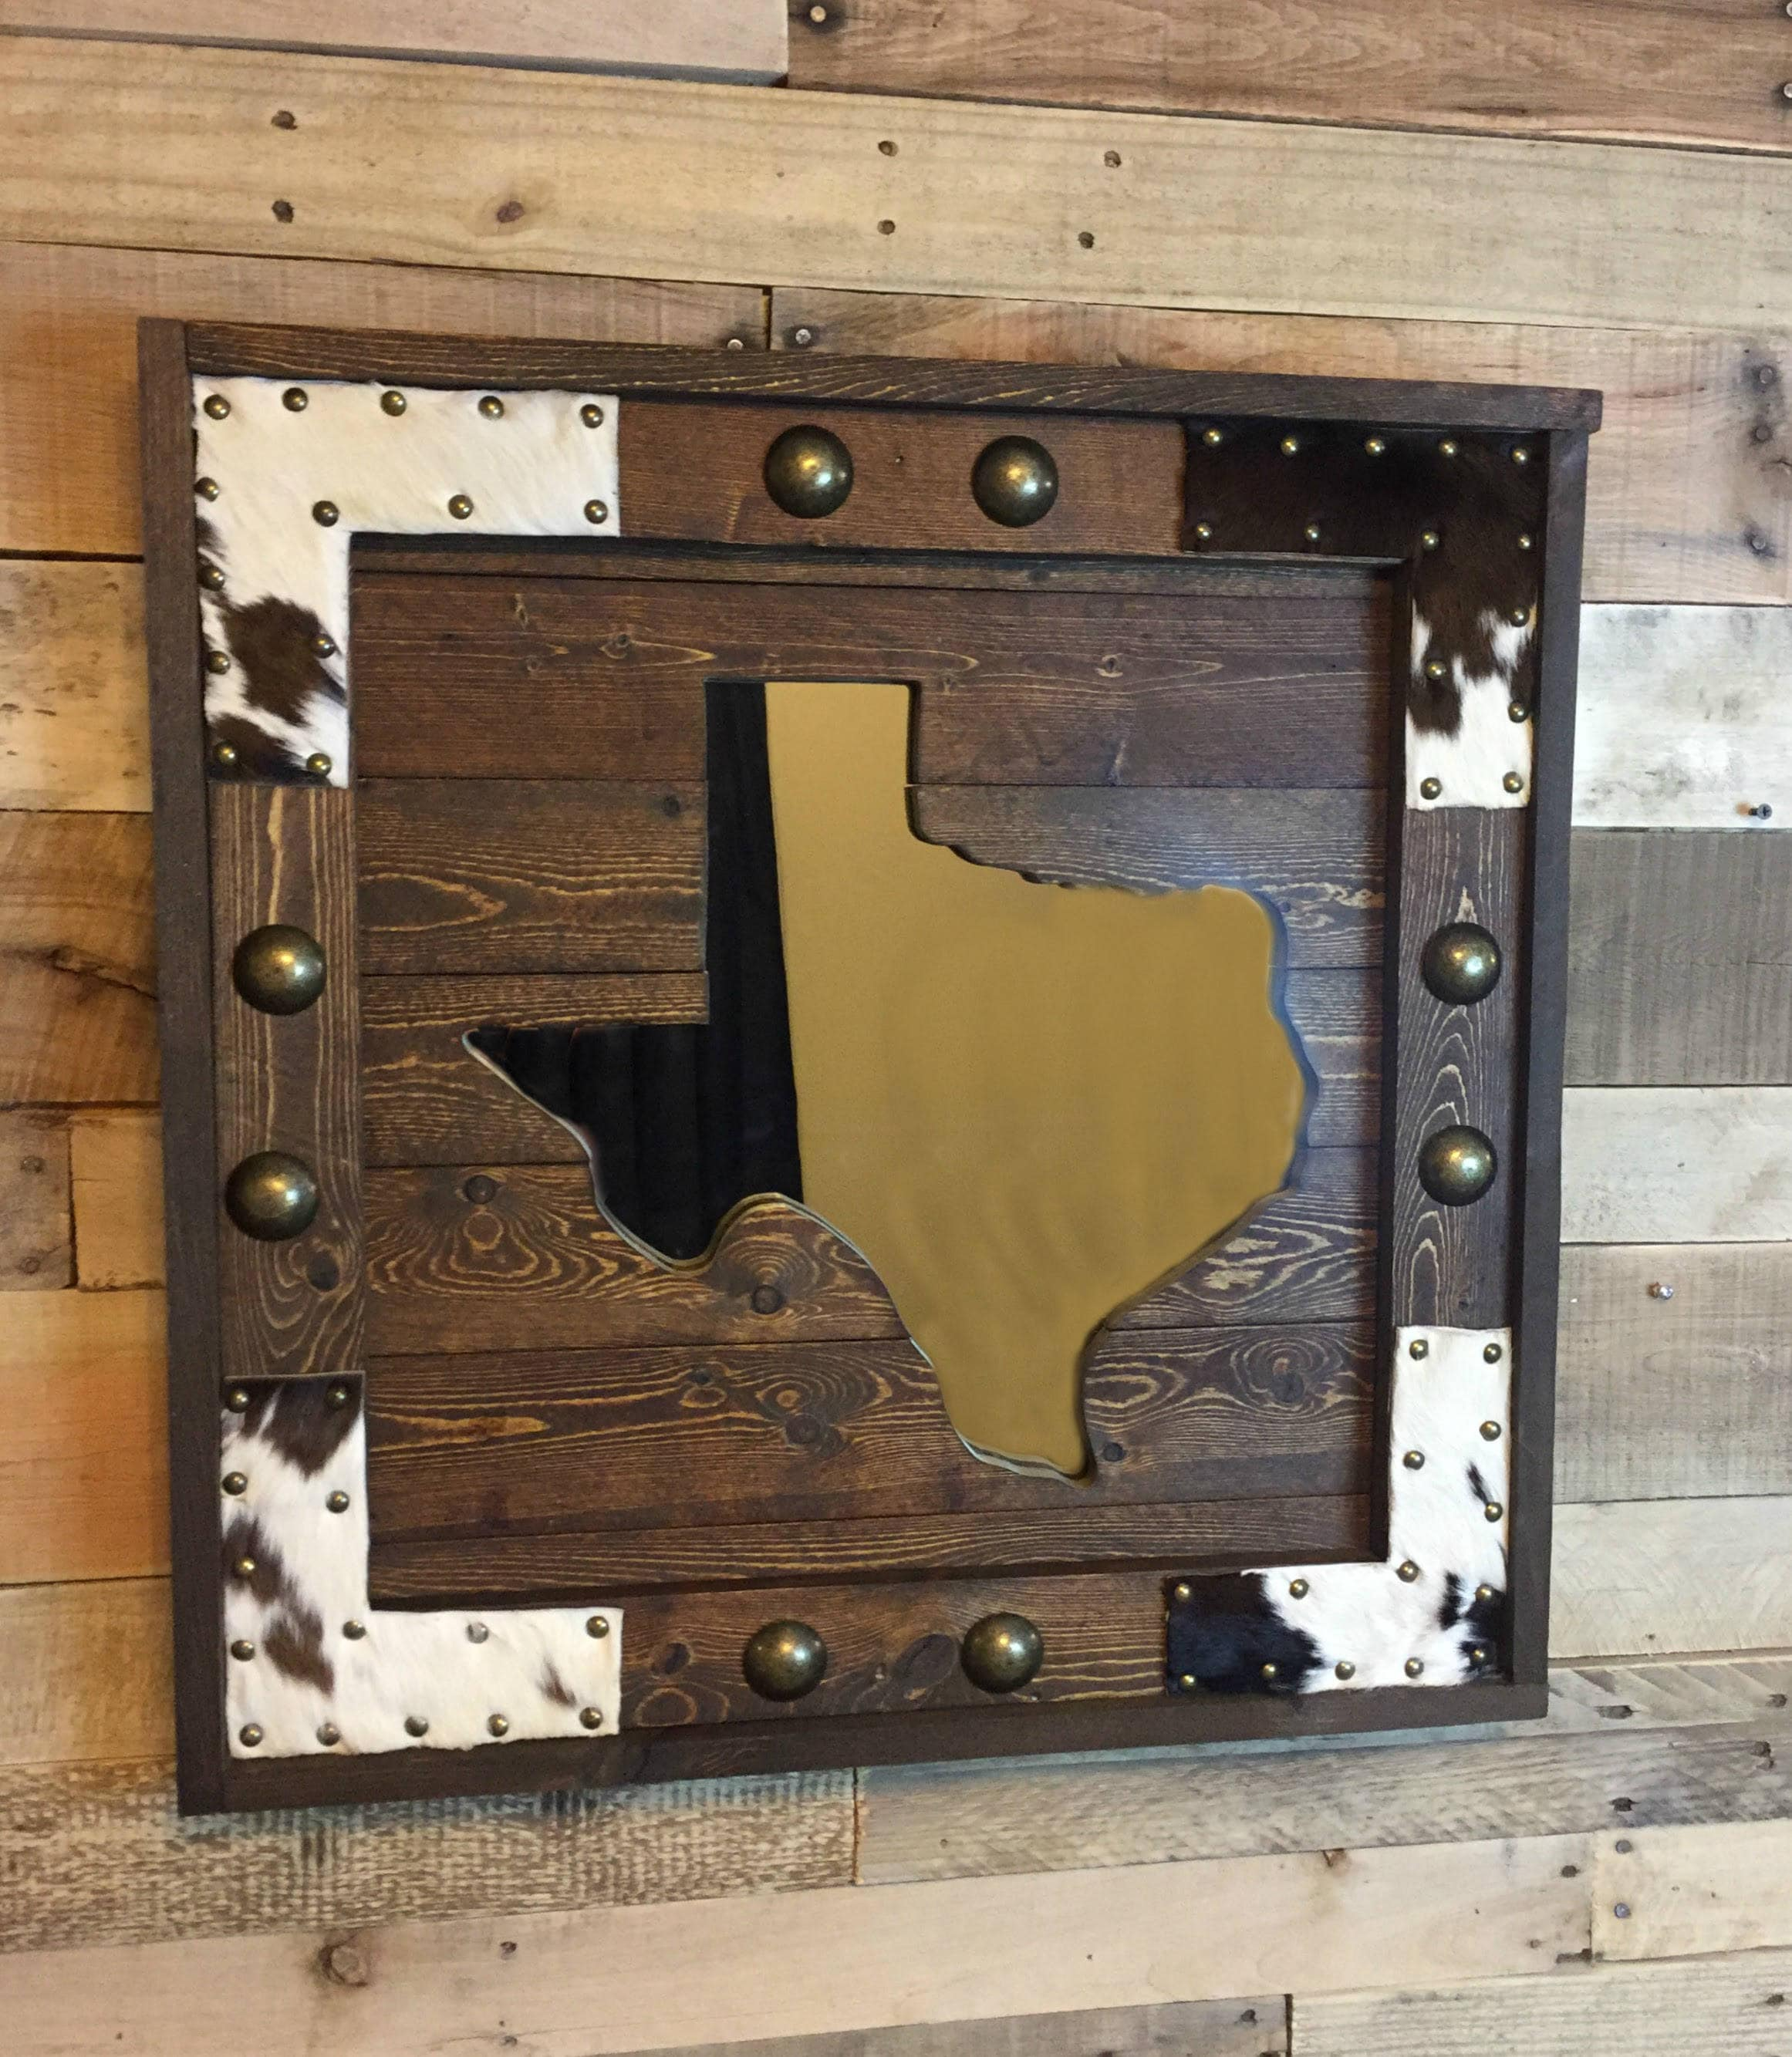 Wooden Texas Recycled Pallet Sign By Rusticrestyle On Etsy: Recycled Wood Texas Mirror Wooden Pallet Texas Mirror